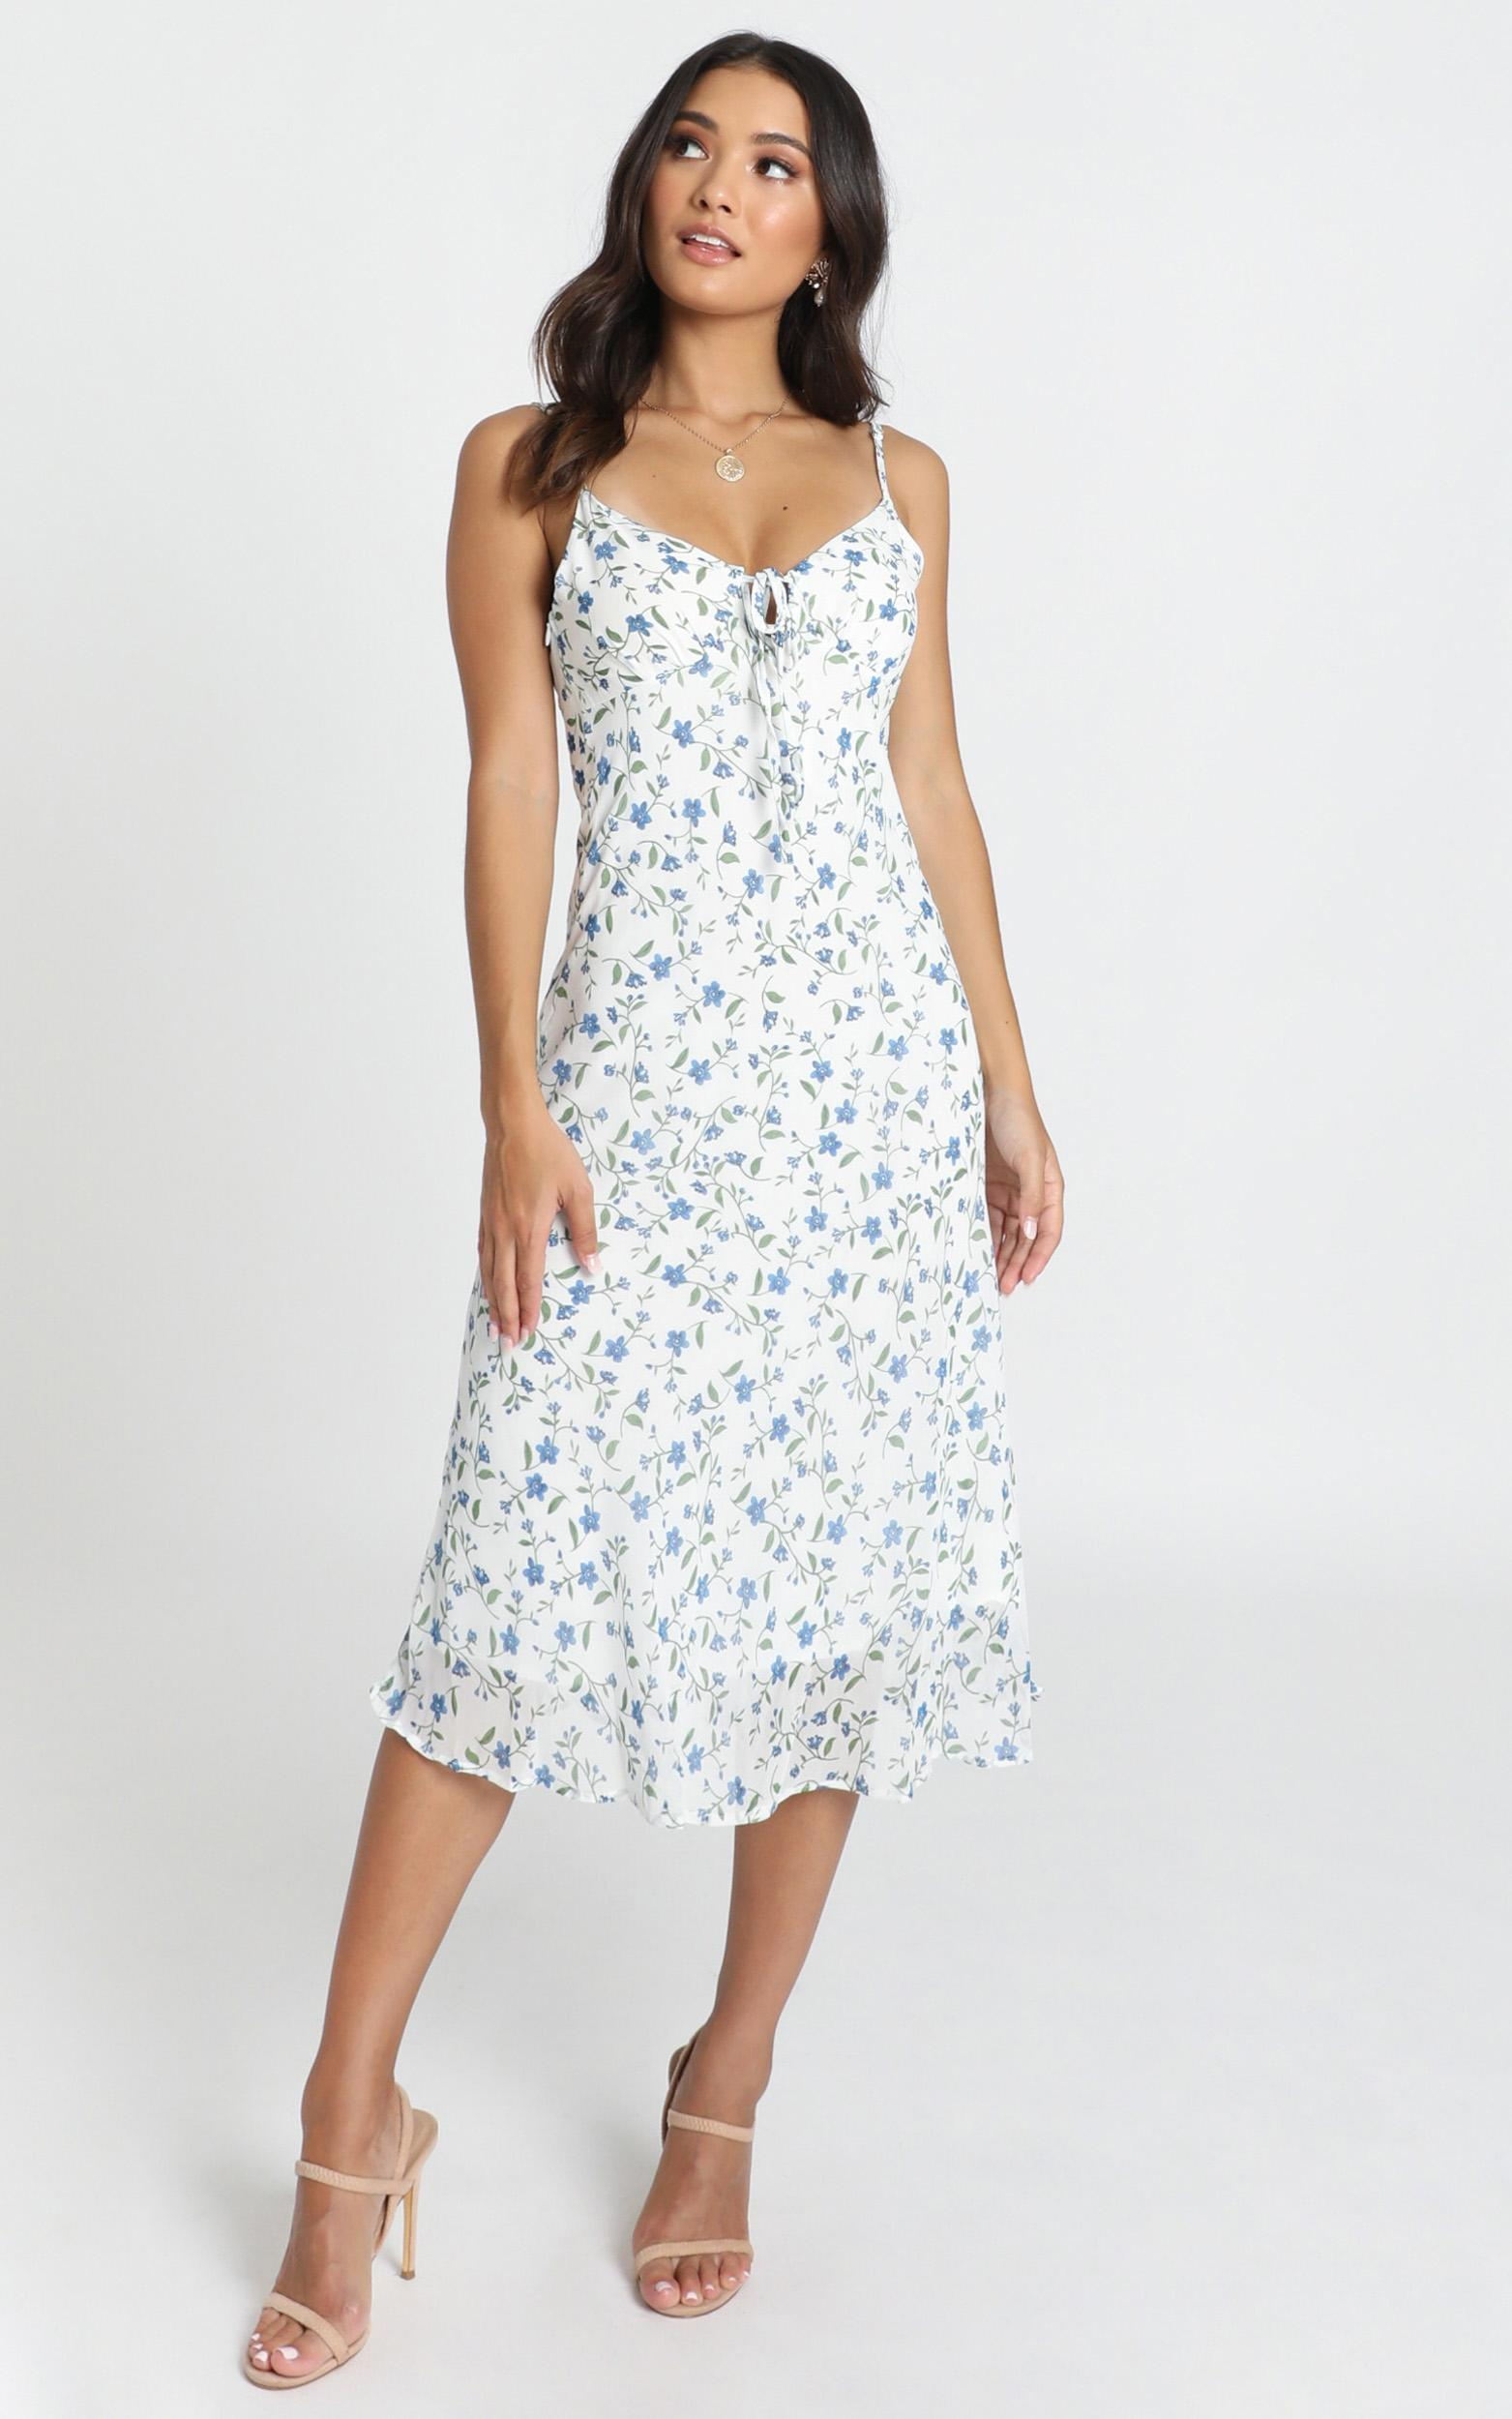 Toss the Dice Dress in white ditsy floral - 12 (L), WHT1, hi-res image number null